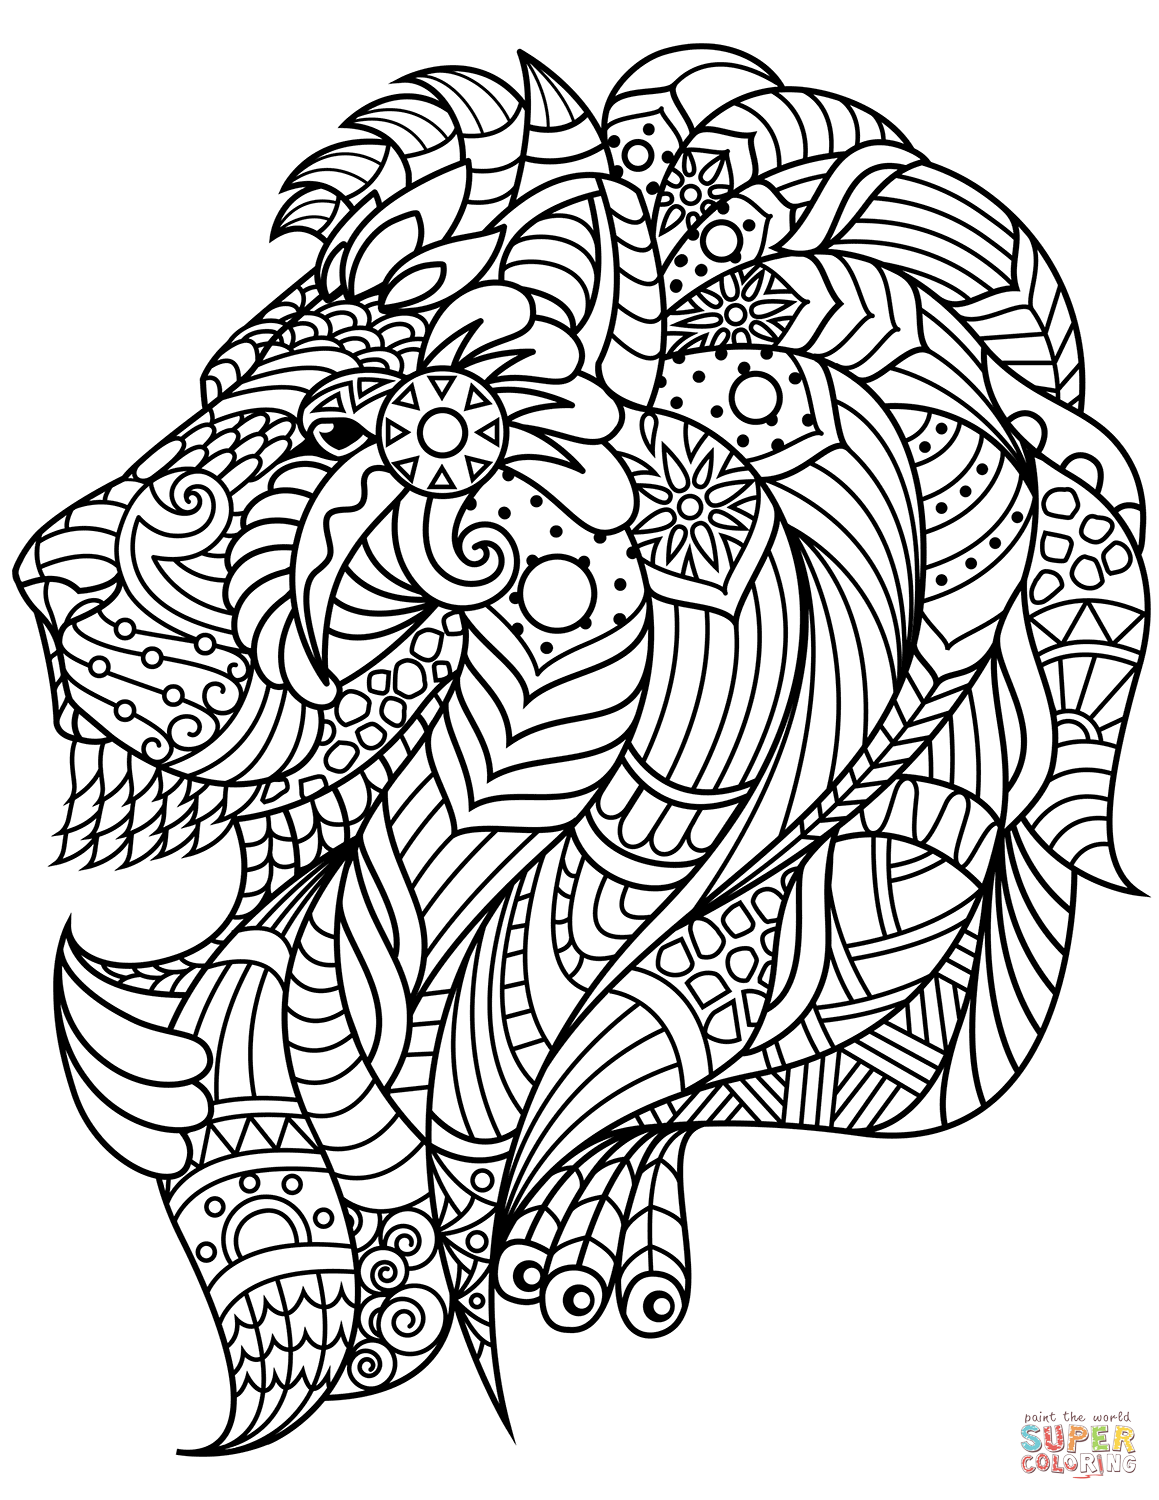 coloring pages zentangle zentangle coloring pages cat sketch coloring page pages coloring zentangle